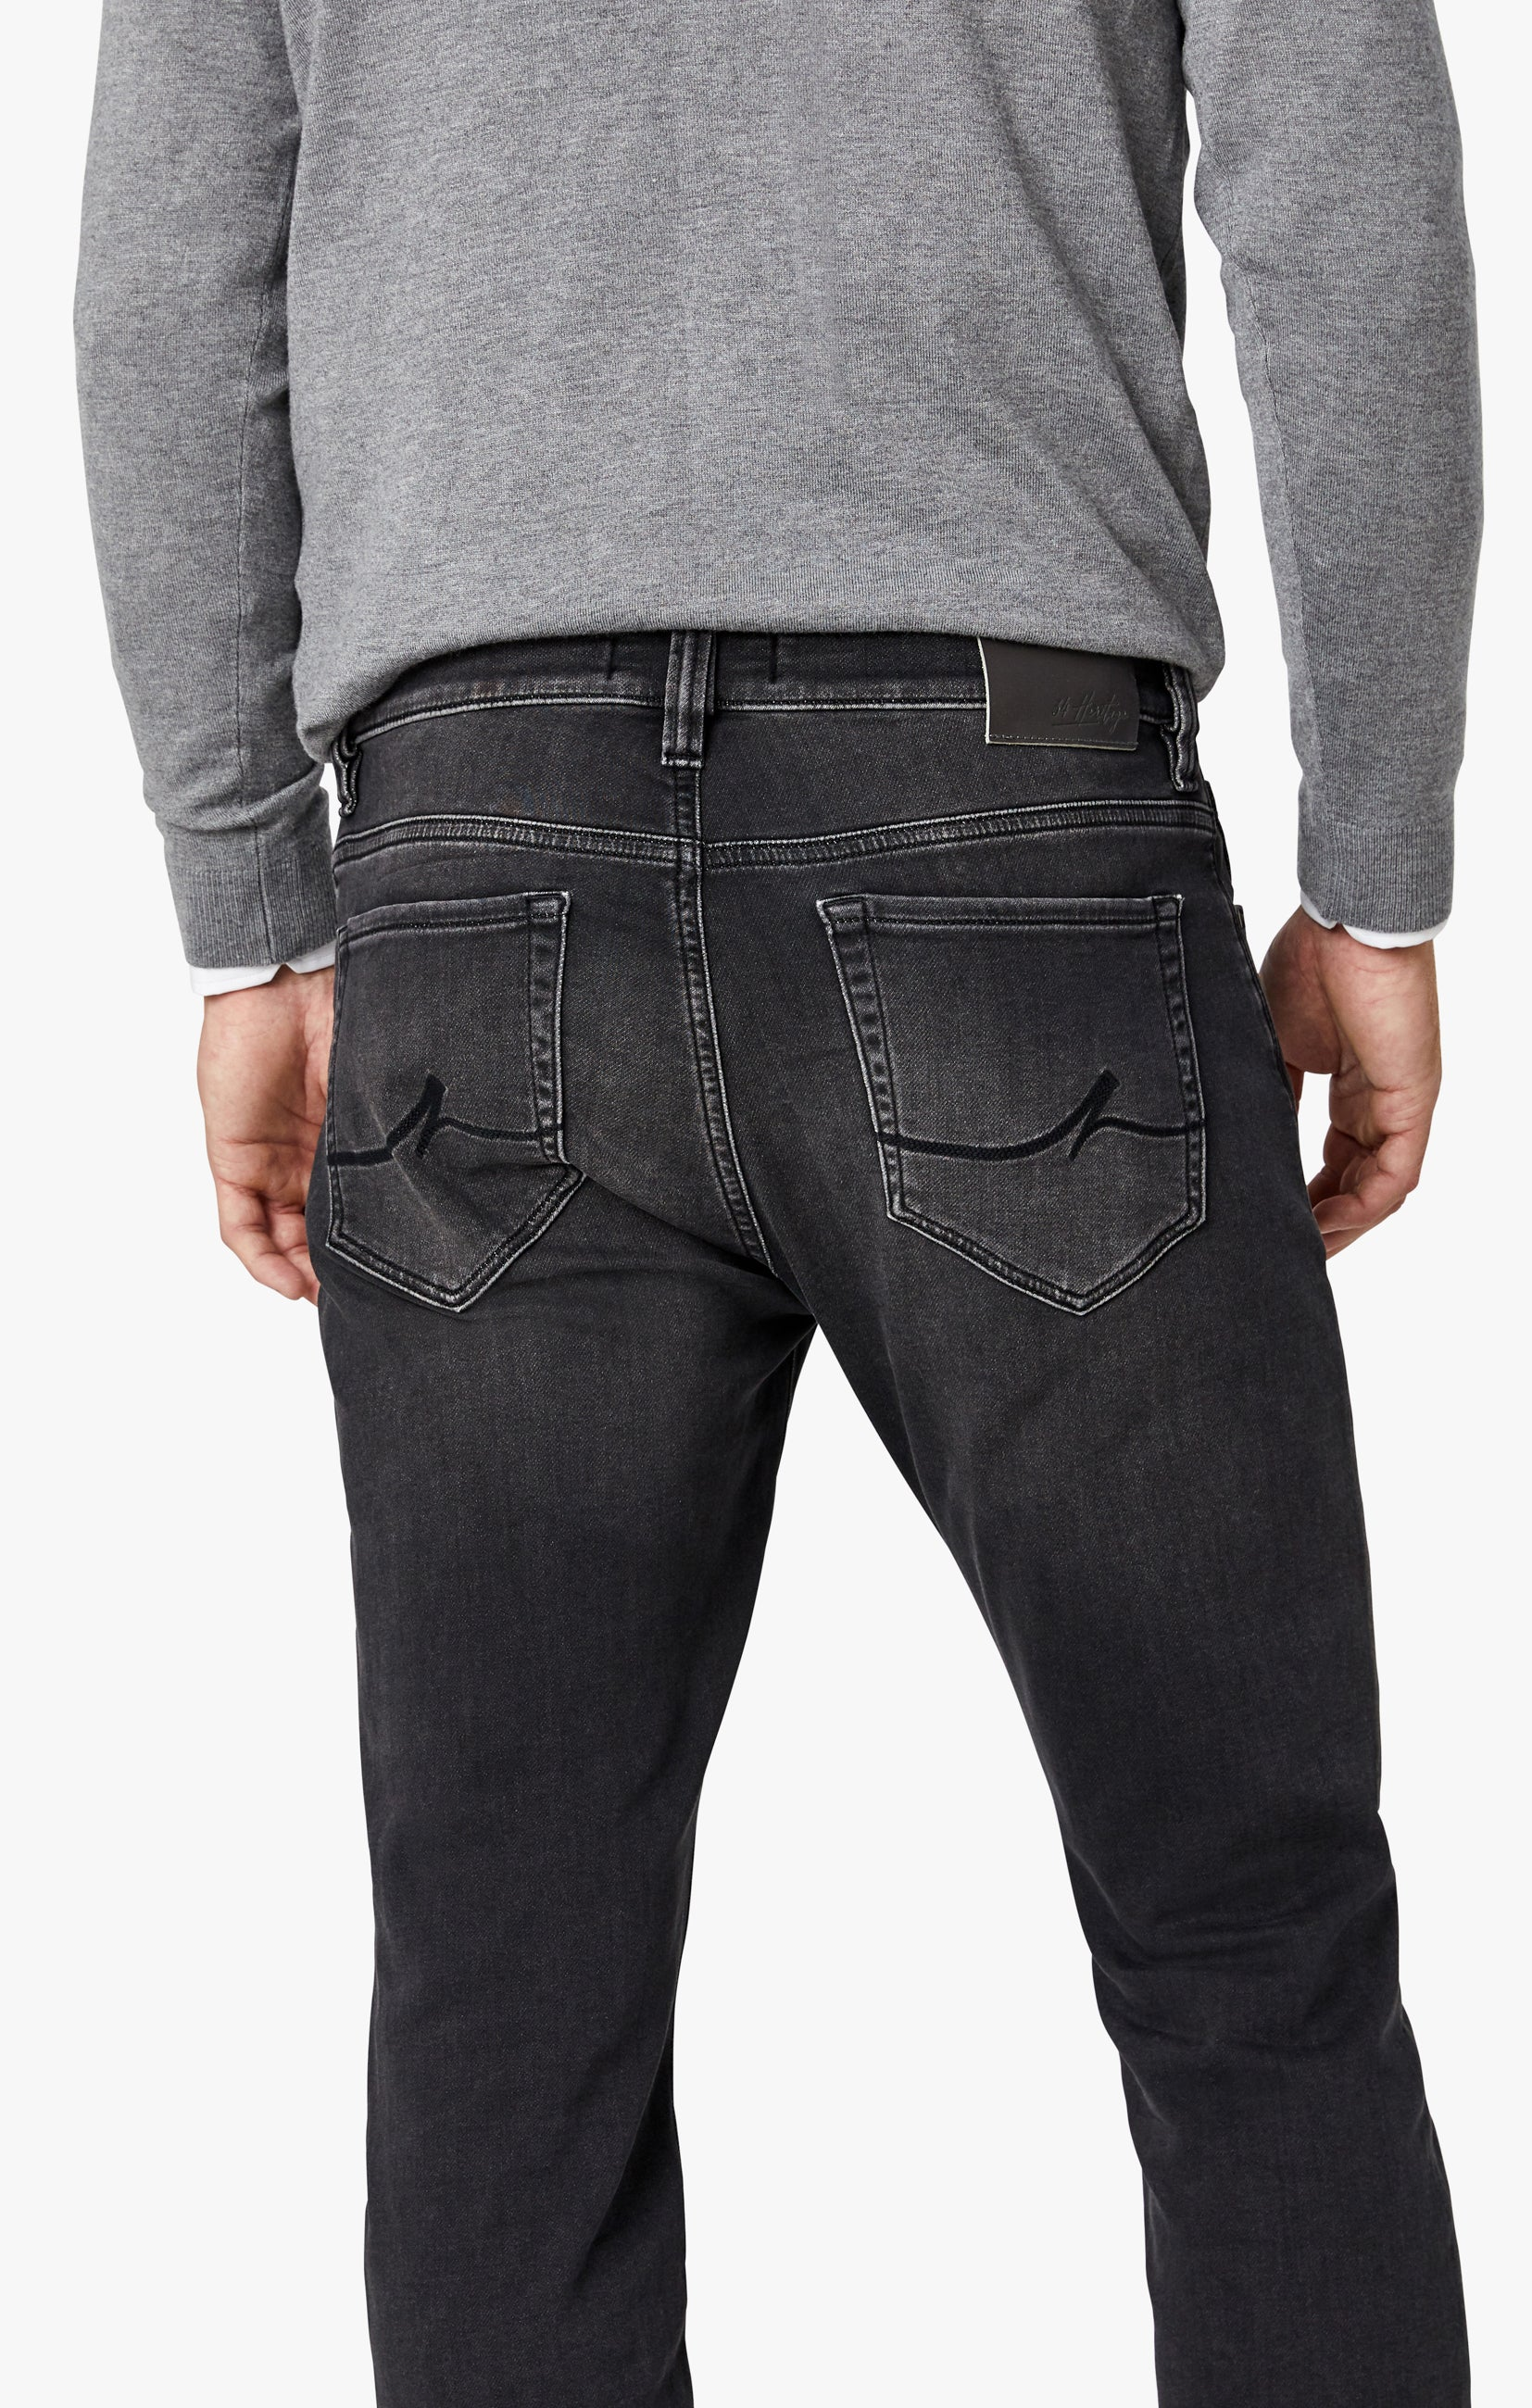 Courage Straight Leg Jeans in Mid Smoke Smart Casual Image 6